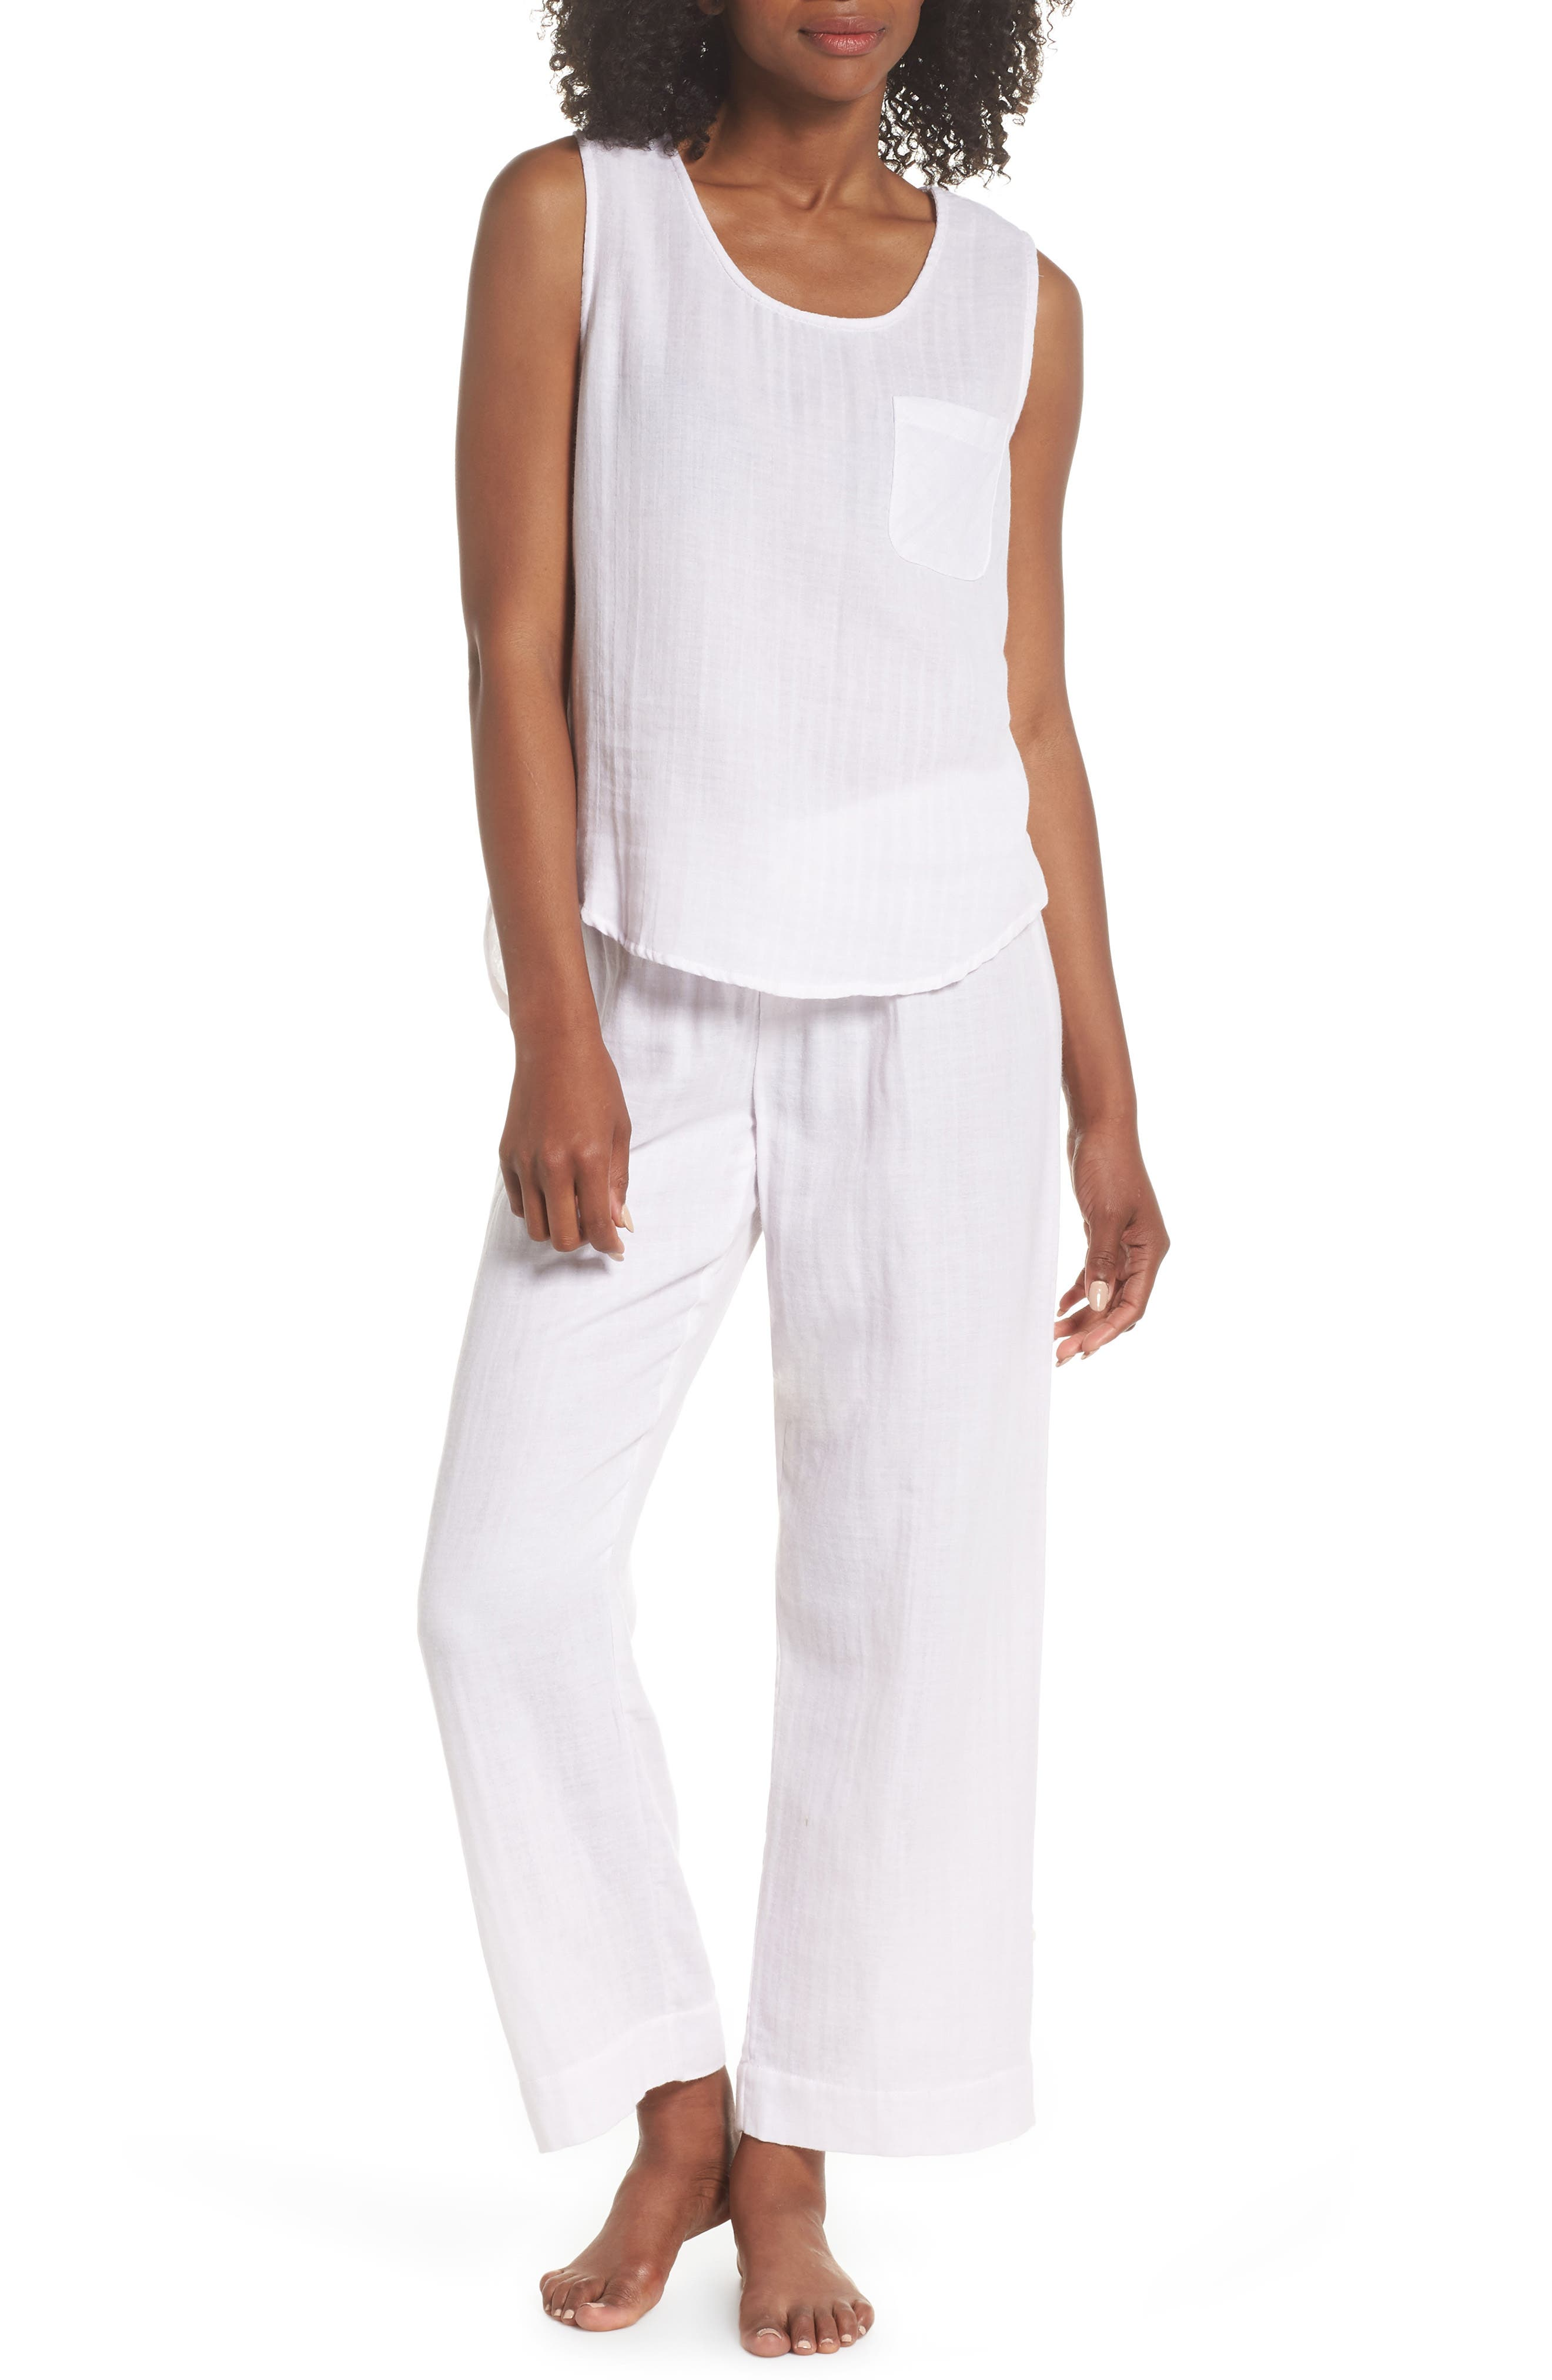 c63768793 papinelle pajamas & nightgowns sleepwear for women - Buy best women's  papinelle pajamas & nightgowns sleepwear on Cools.com Shop